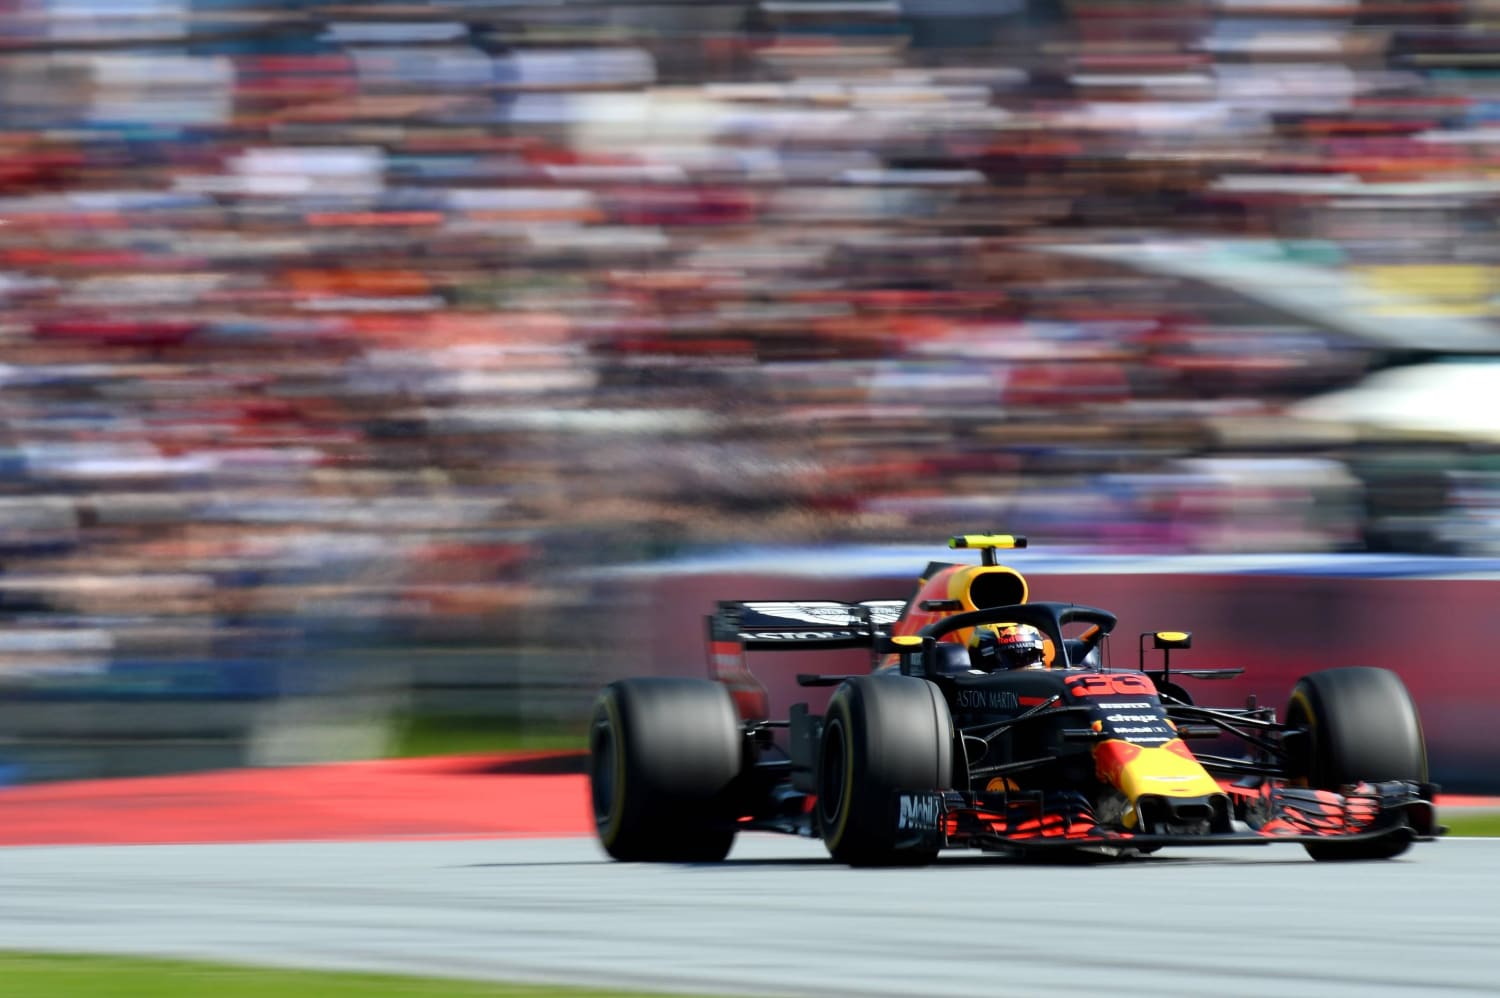 Austrian F1 Grand Prix 2018: Race report and results